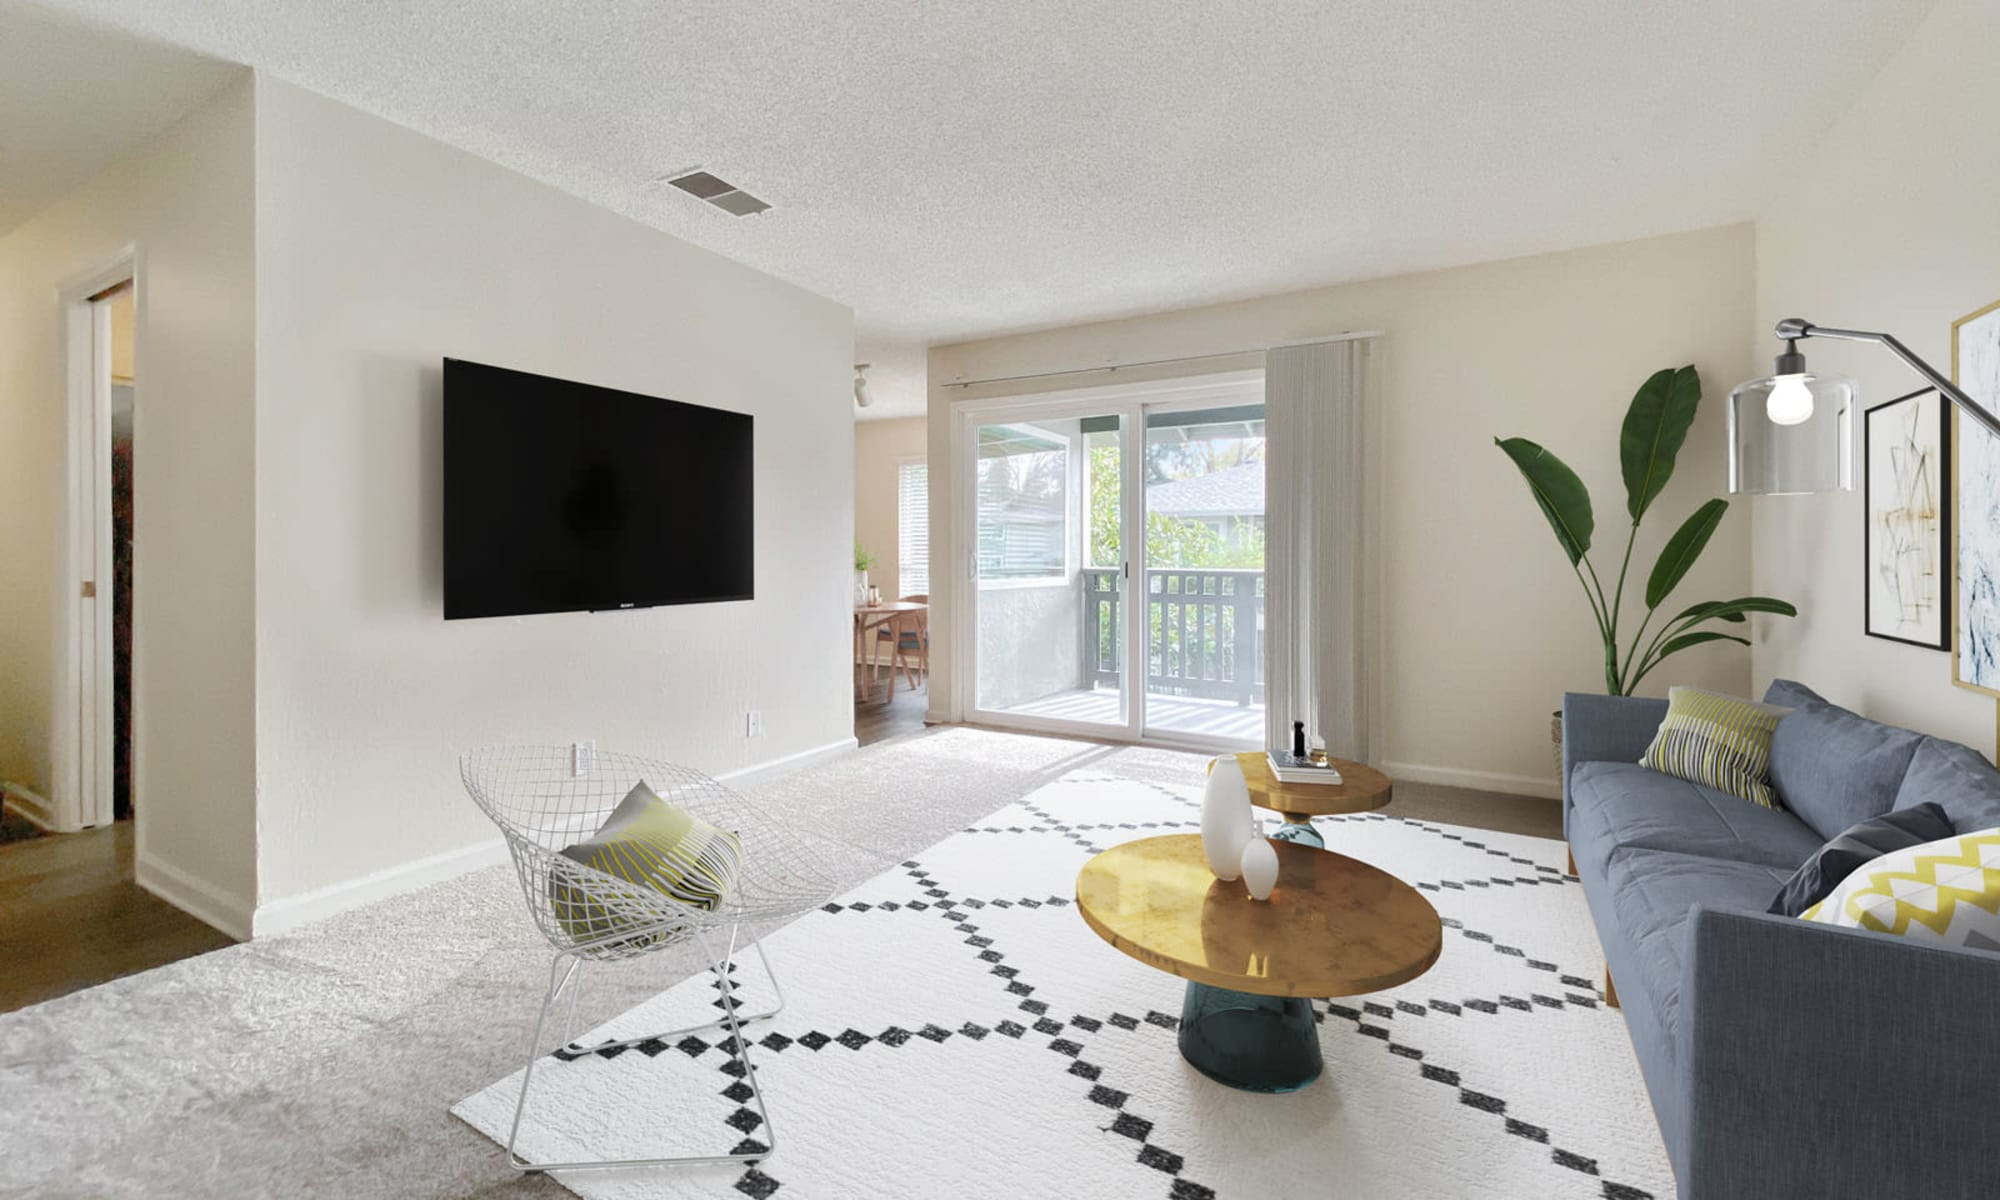 Well-furnished model home's living area at Pleasanton Glen Apartment Homes in Pleasanton, California